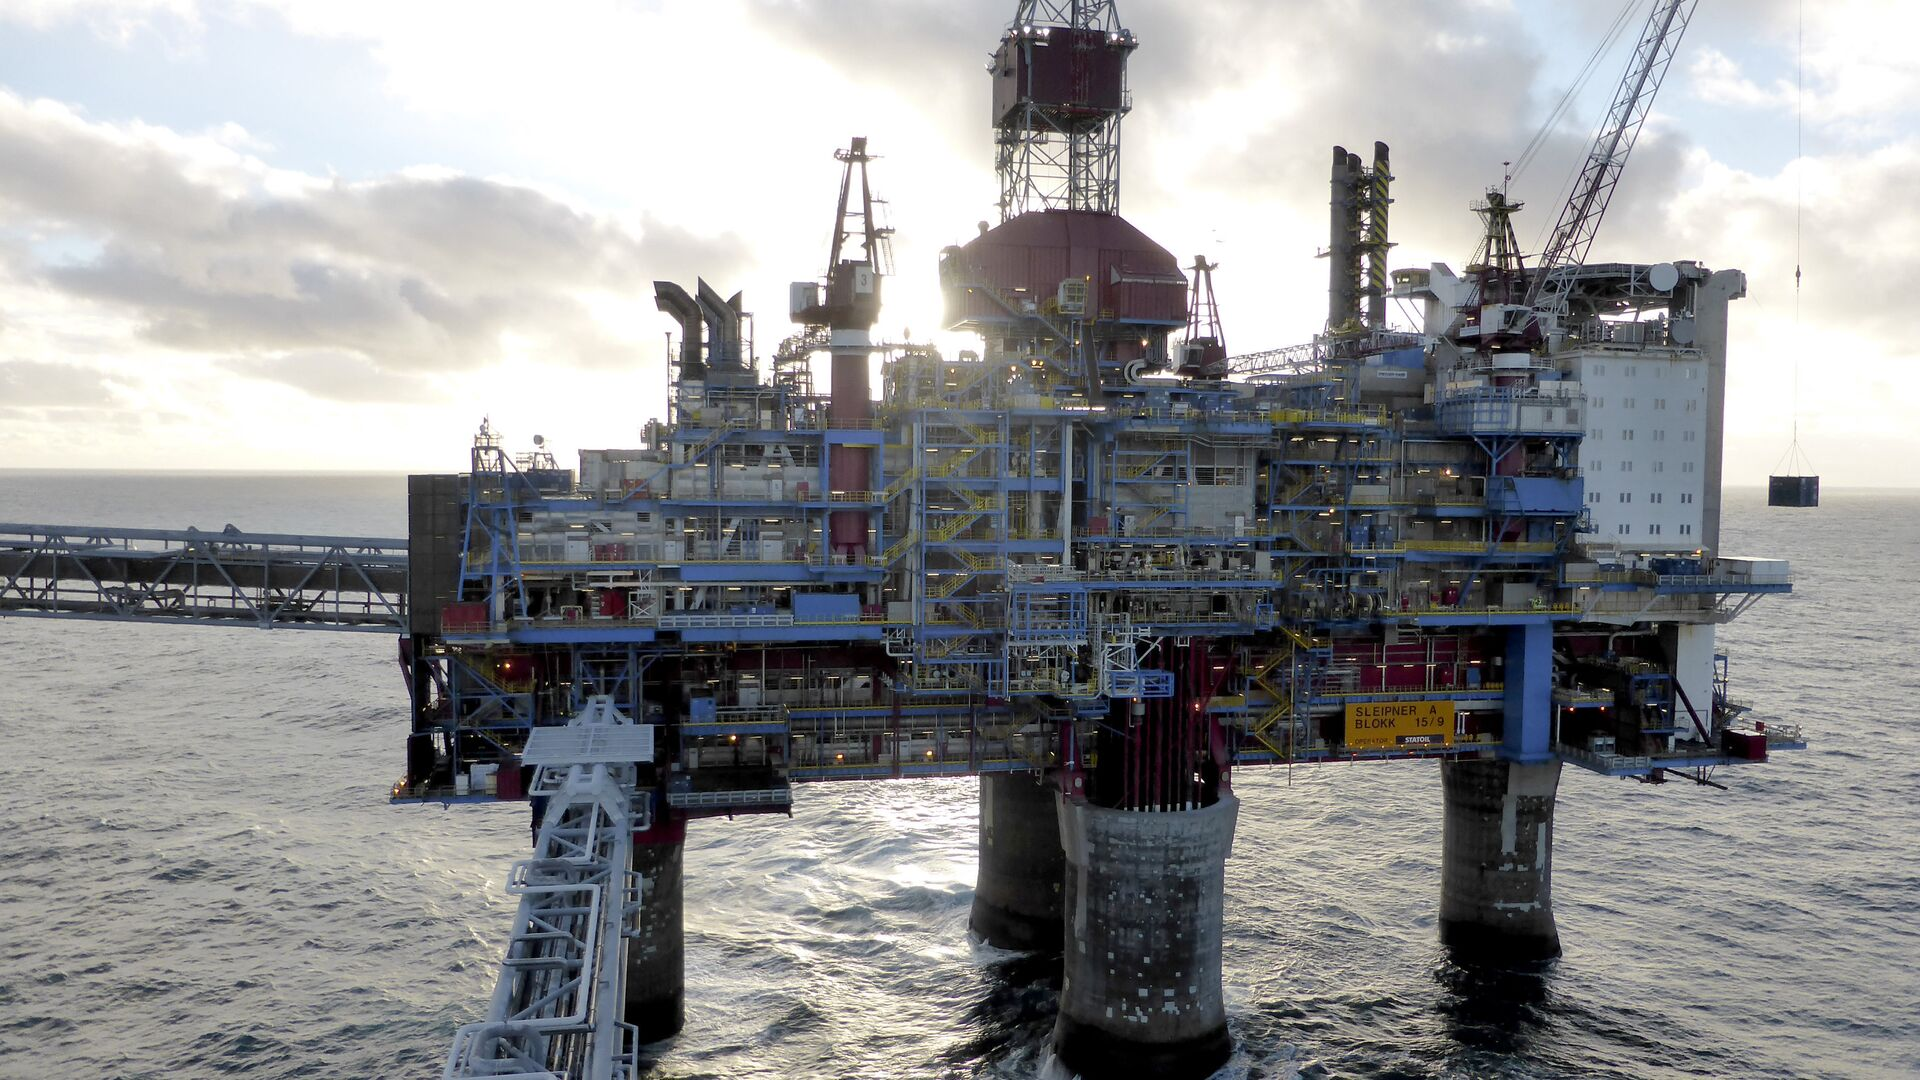 Oil and gas company Statoil drilling and accommodation platform Sleipner A is pictured in the offshore near the Stavanger, Norway, February 11, 2016 - Sputnik Mundo, 1920, 28.09.2021